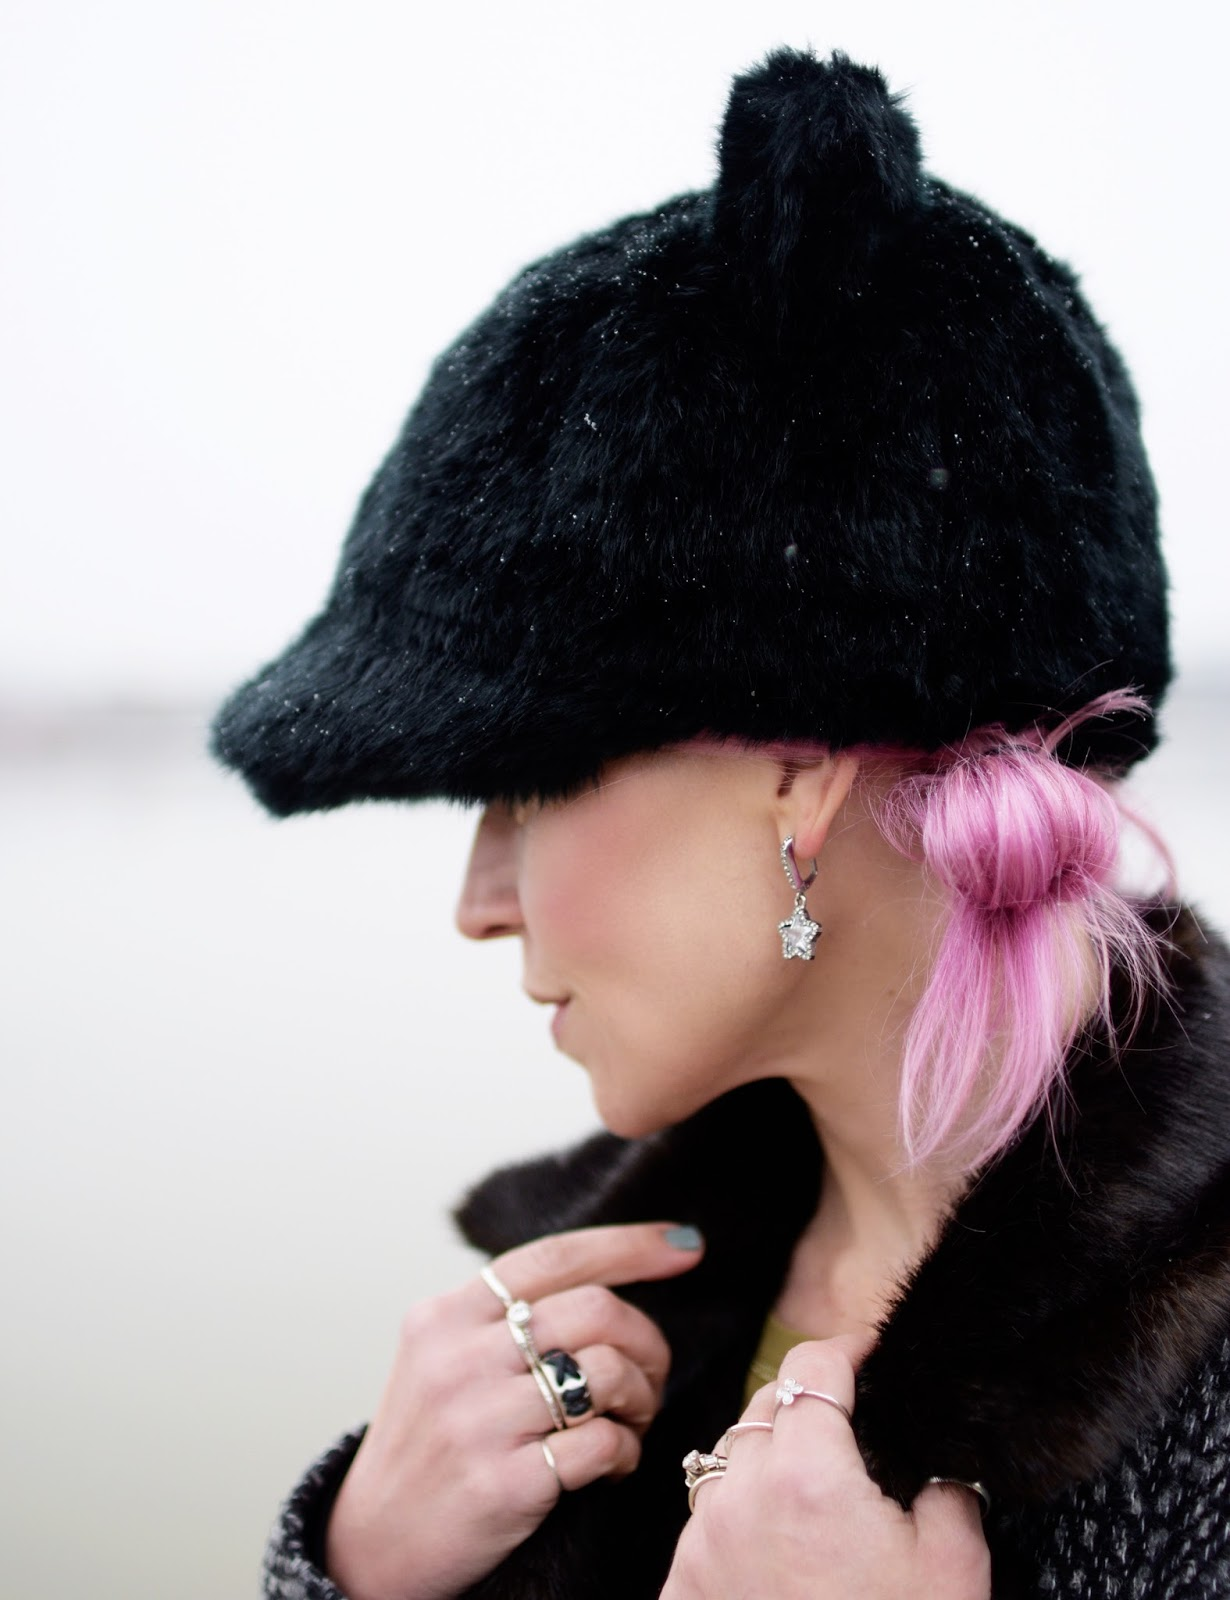 Monika Faulkner outfit inspiration - fur-collared coat, Kate Spade hat with ears, pink hair